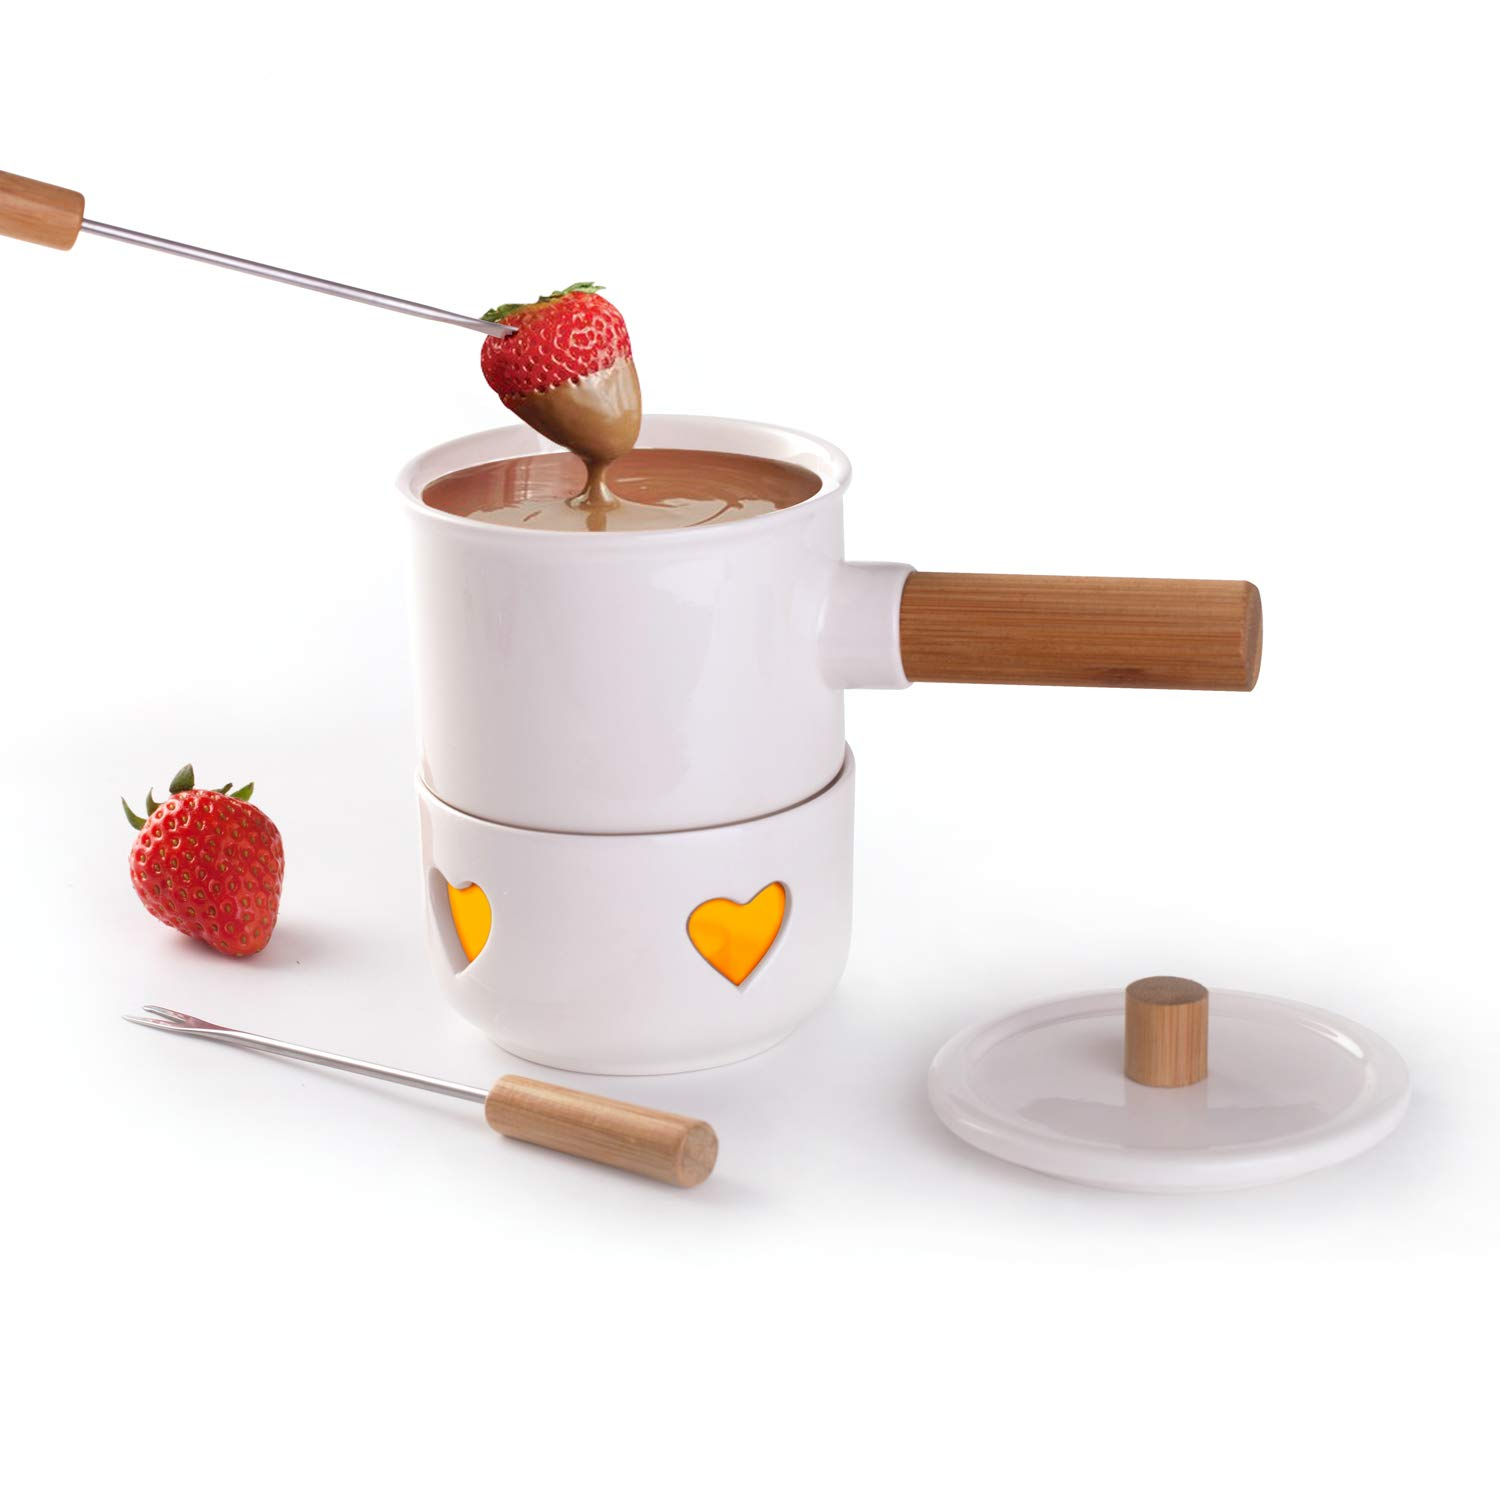 Sunbright Tapas Fondue Set with Bamboo Handle & 2 Forks,Melting Pot for Cheese,Chocolate, Heated by Tea Light,White, New Bone China